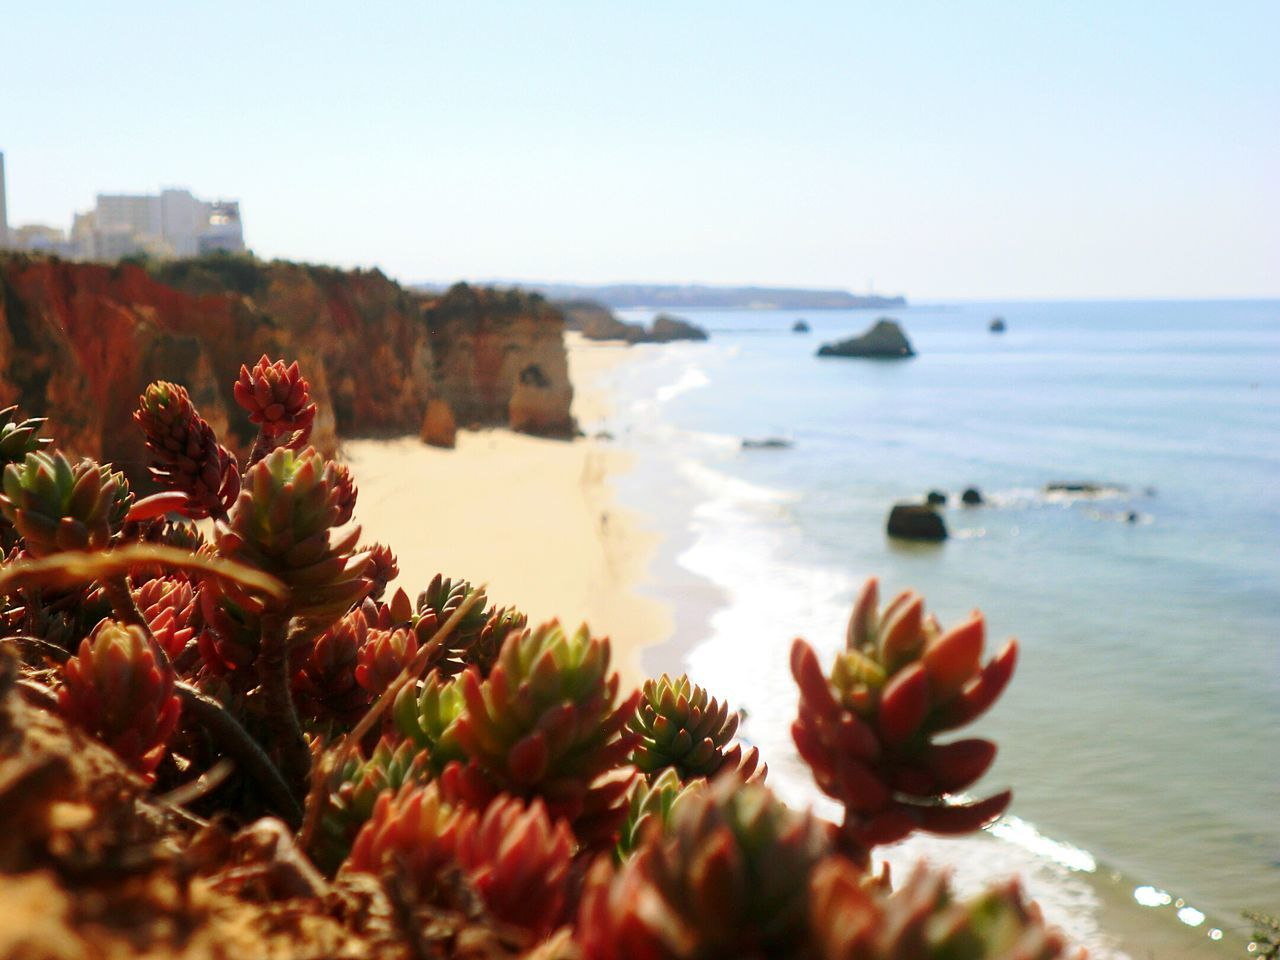 Praia do Vau Taking Photos Portimao Plants Beach Vau Portimão, Portugal Outdoors Beauty In Nature Natureza Local Nature Landscape